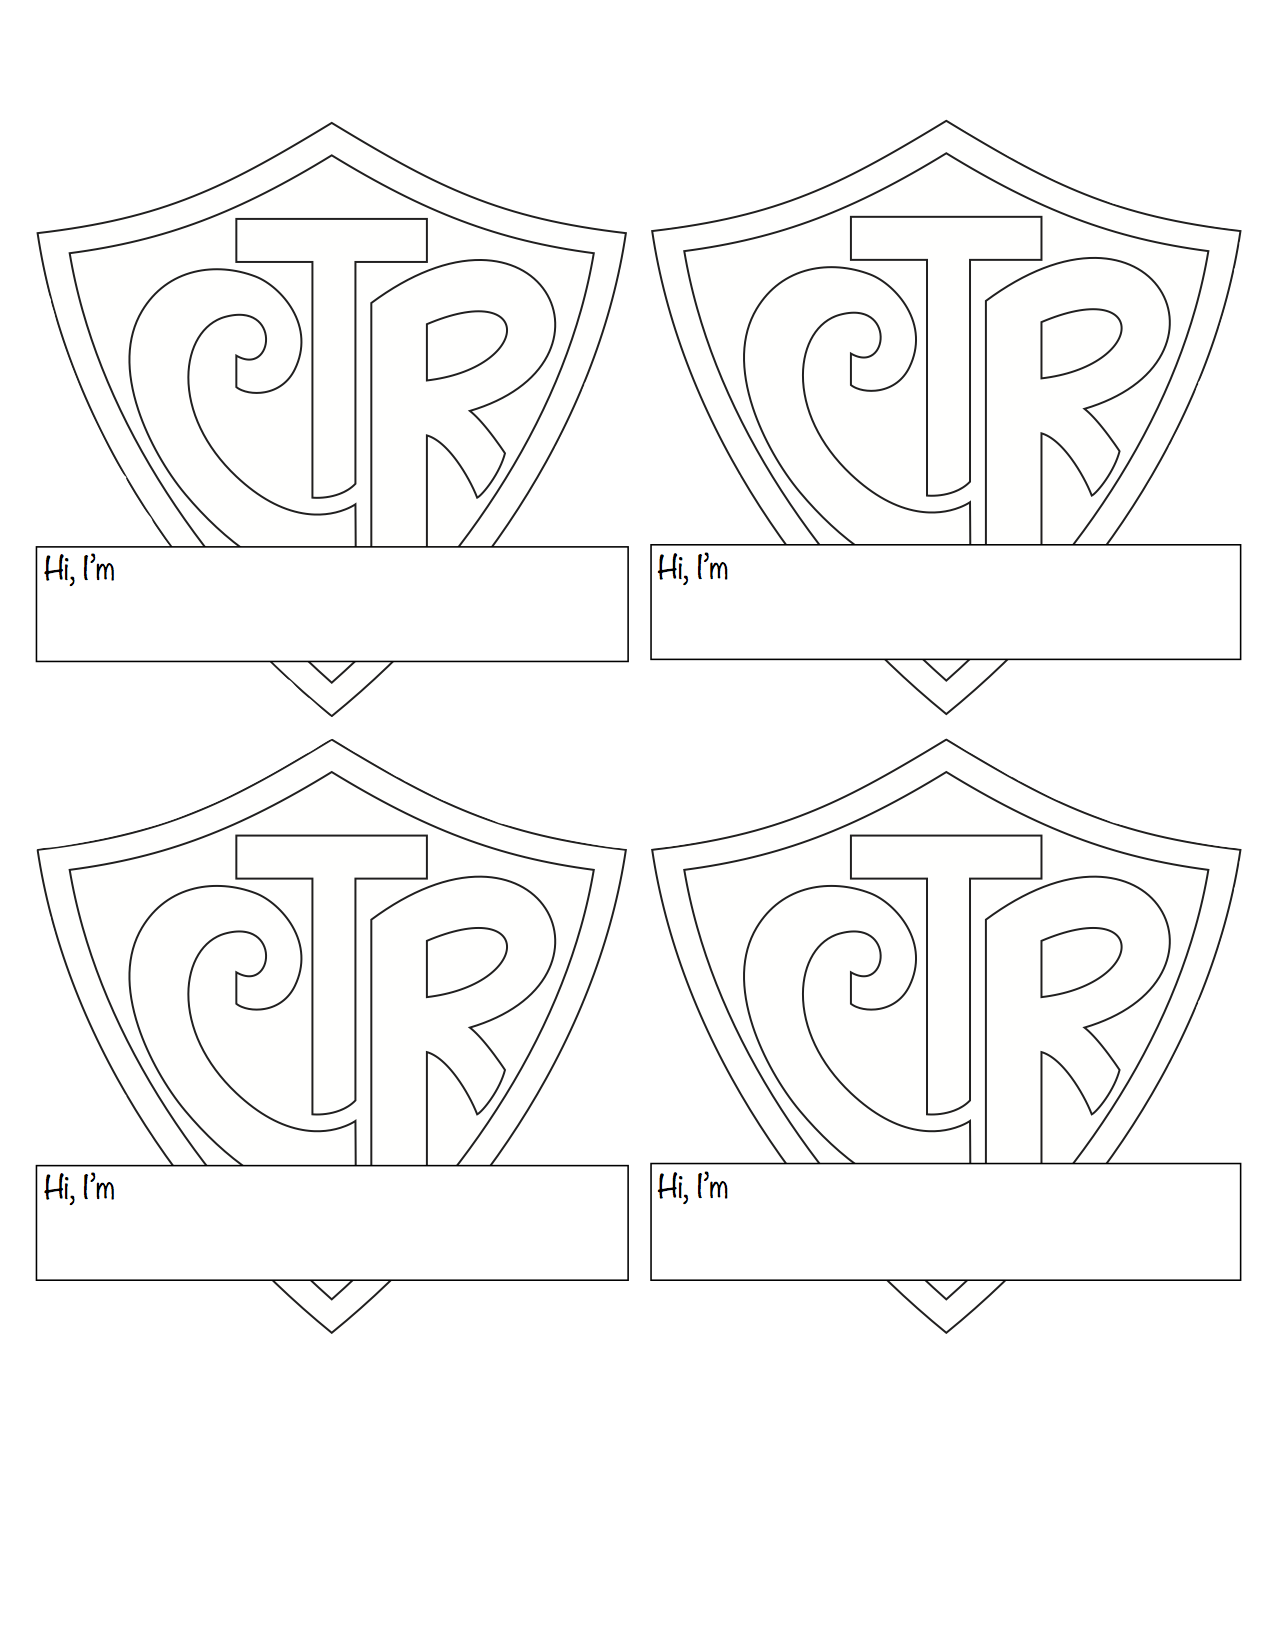 I modified the CTR shield logo to make a name badge for the kids ...